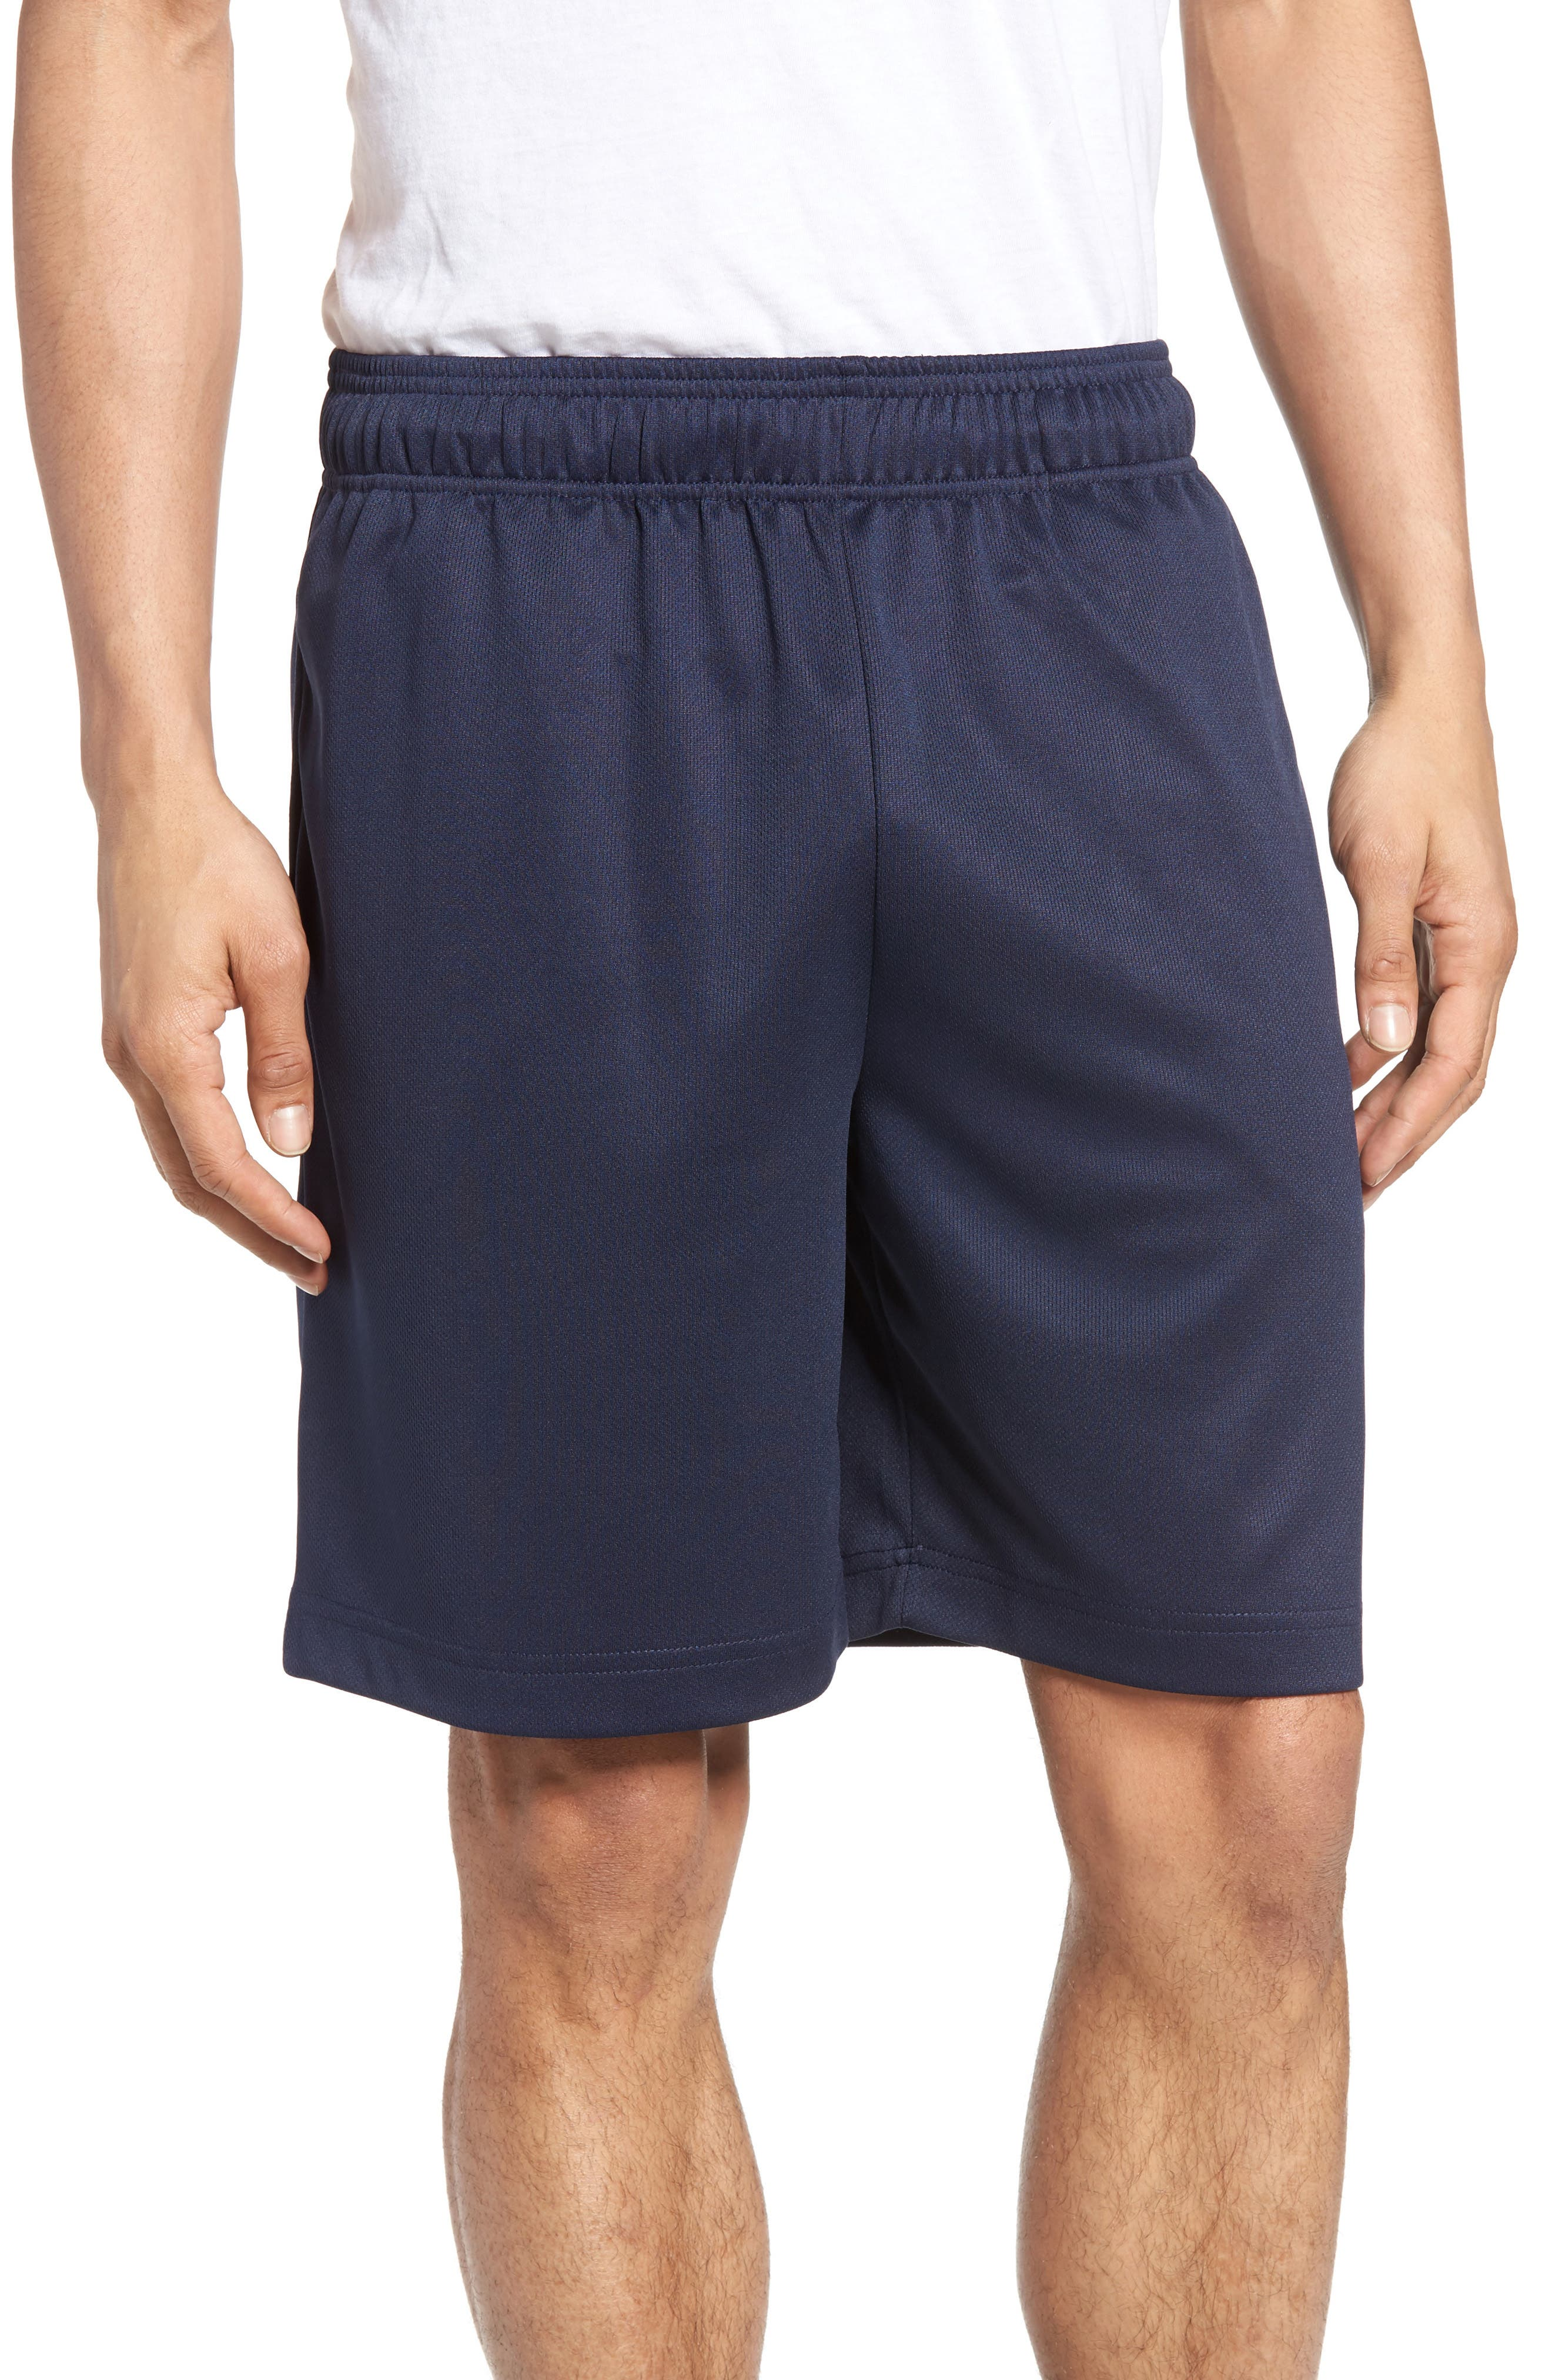 Work Out Lounge Shorts,                             Main thumbnail 1, color,                             Navy